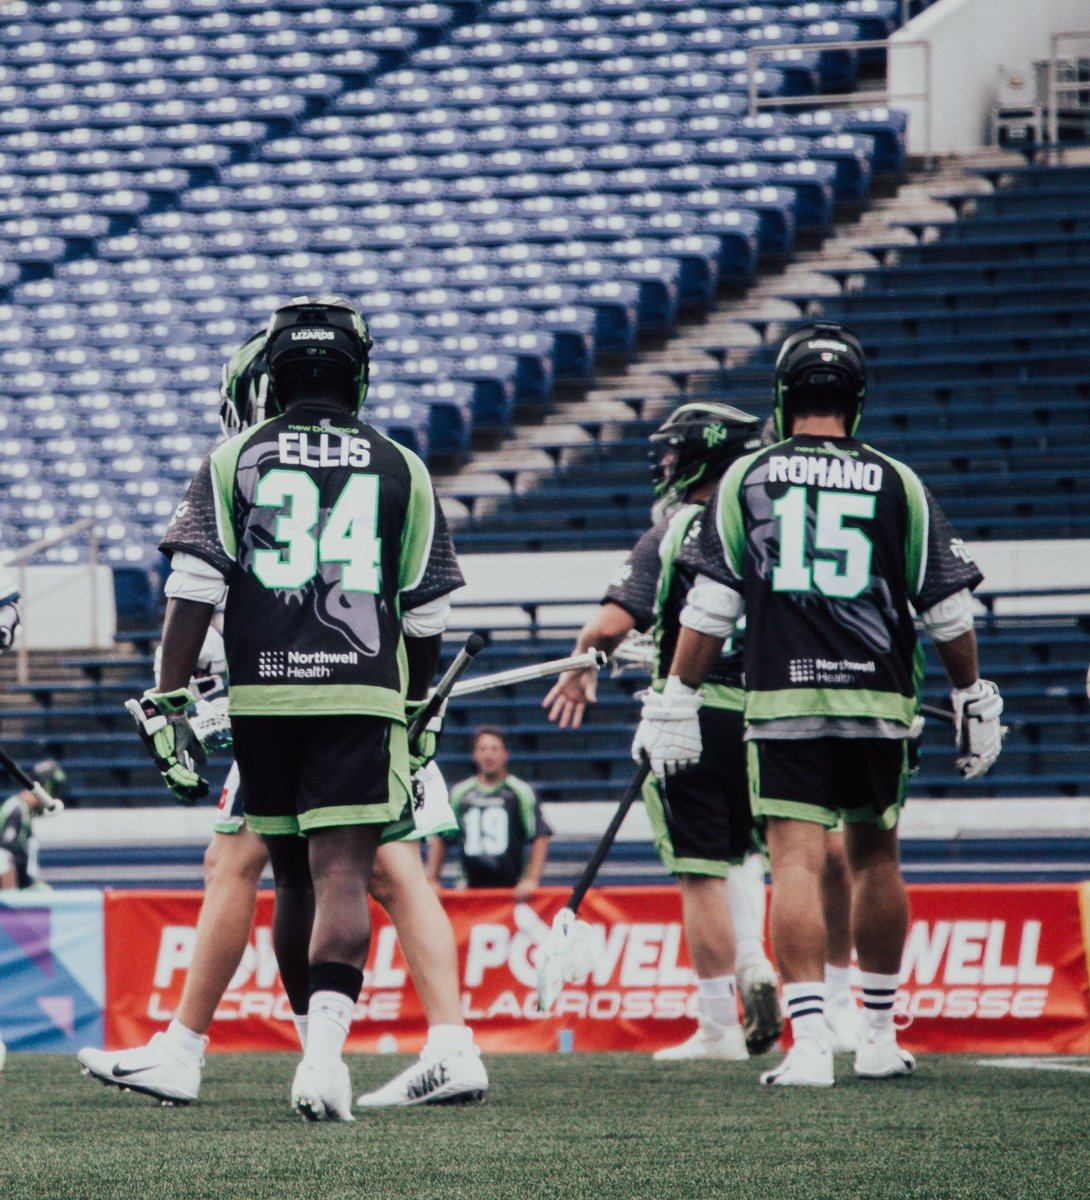 Mark Ellis and @theerealstevena concluded their 2020 @MLL_Lacrosse season yesterday. Both played in all five games for the @LizardsLacrosse, with Ellis scoring one goal and one assist and Romano scoring one goal. #RoarWithPride #HofstraFamily https://t.co/F7nojmeKSM